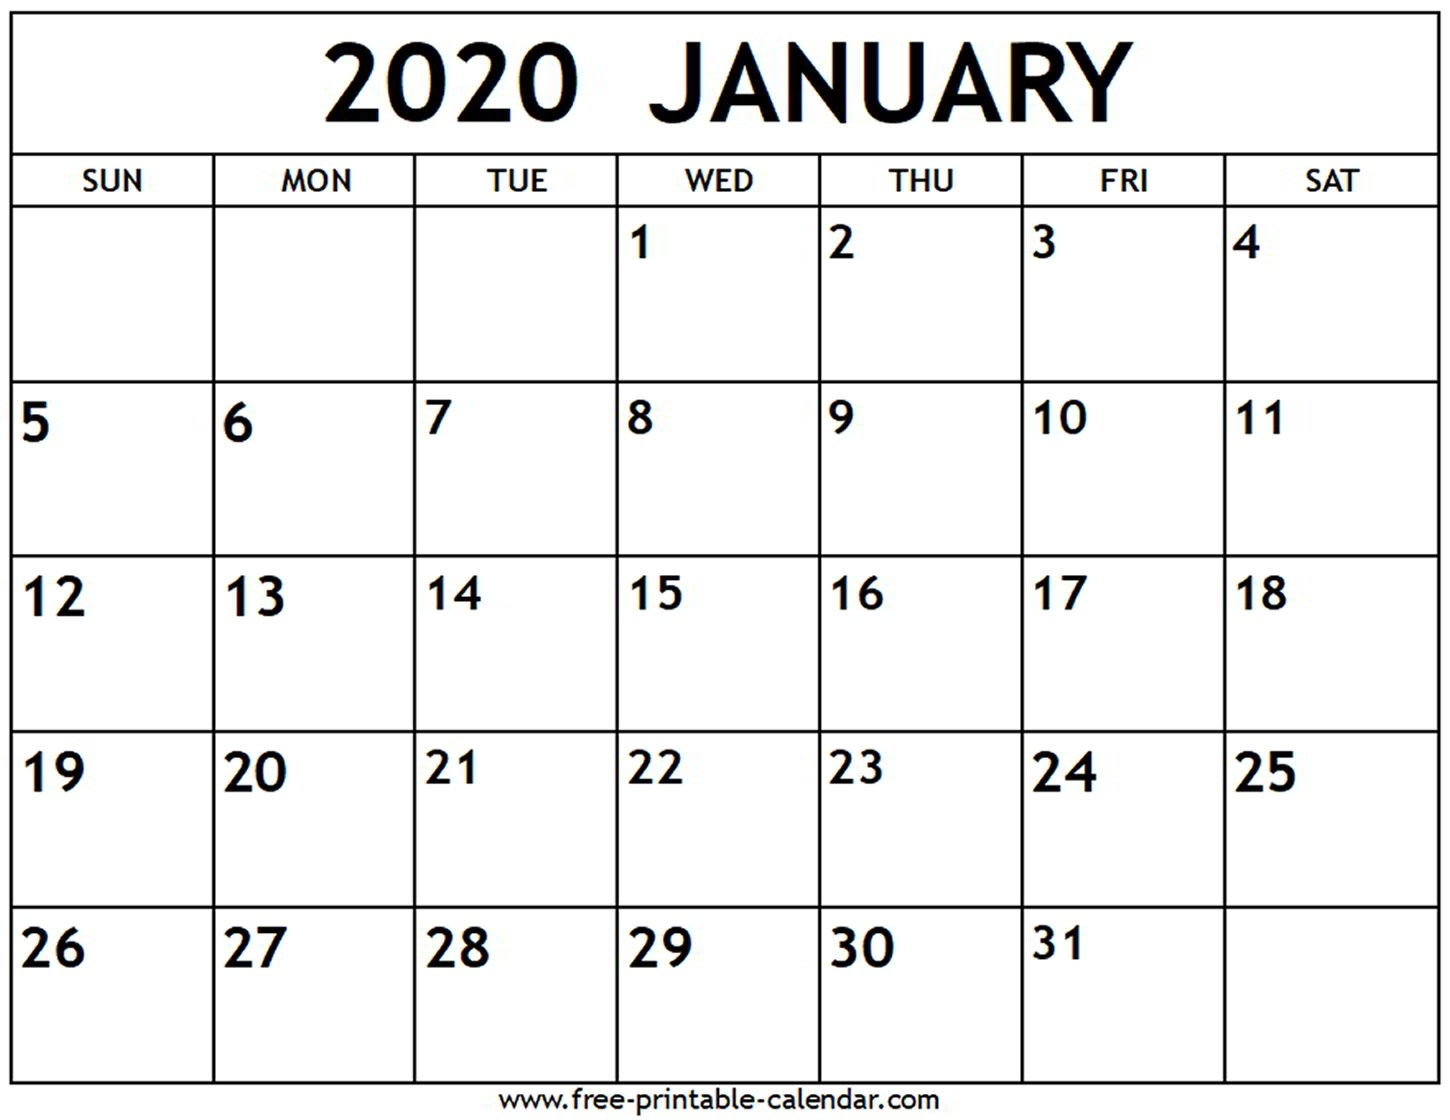 January 2020 Calendar - Free-Printable-Calendar-January To July 2020 Calendar